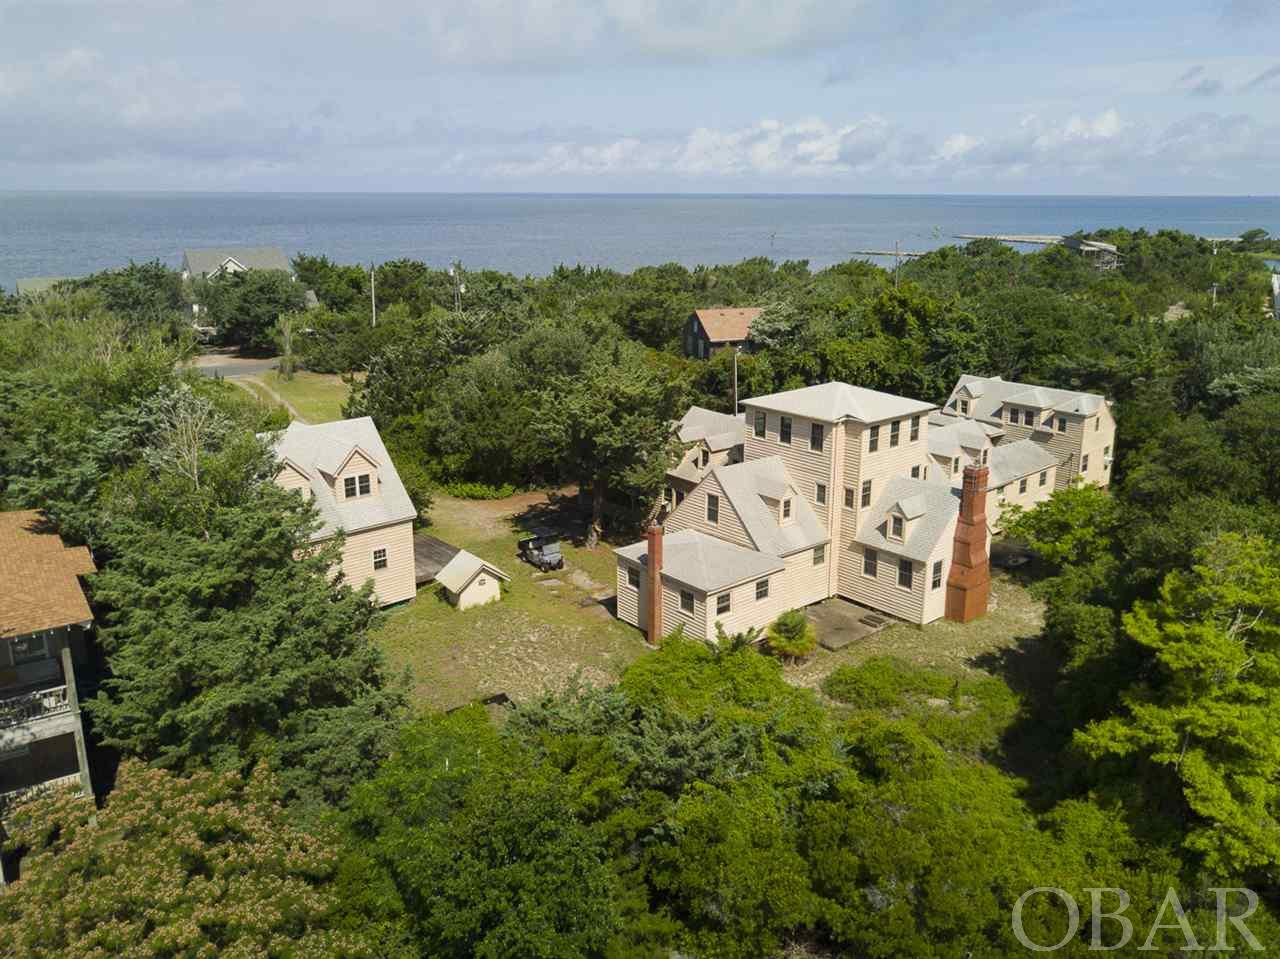 390 Silver Lake Drive,Ocracoke,NC 27960,6 Bedrooms Bedrooms,4 BathroomsBathrooms,Residential,Silver Lake Drive,100925